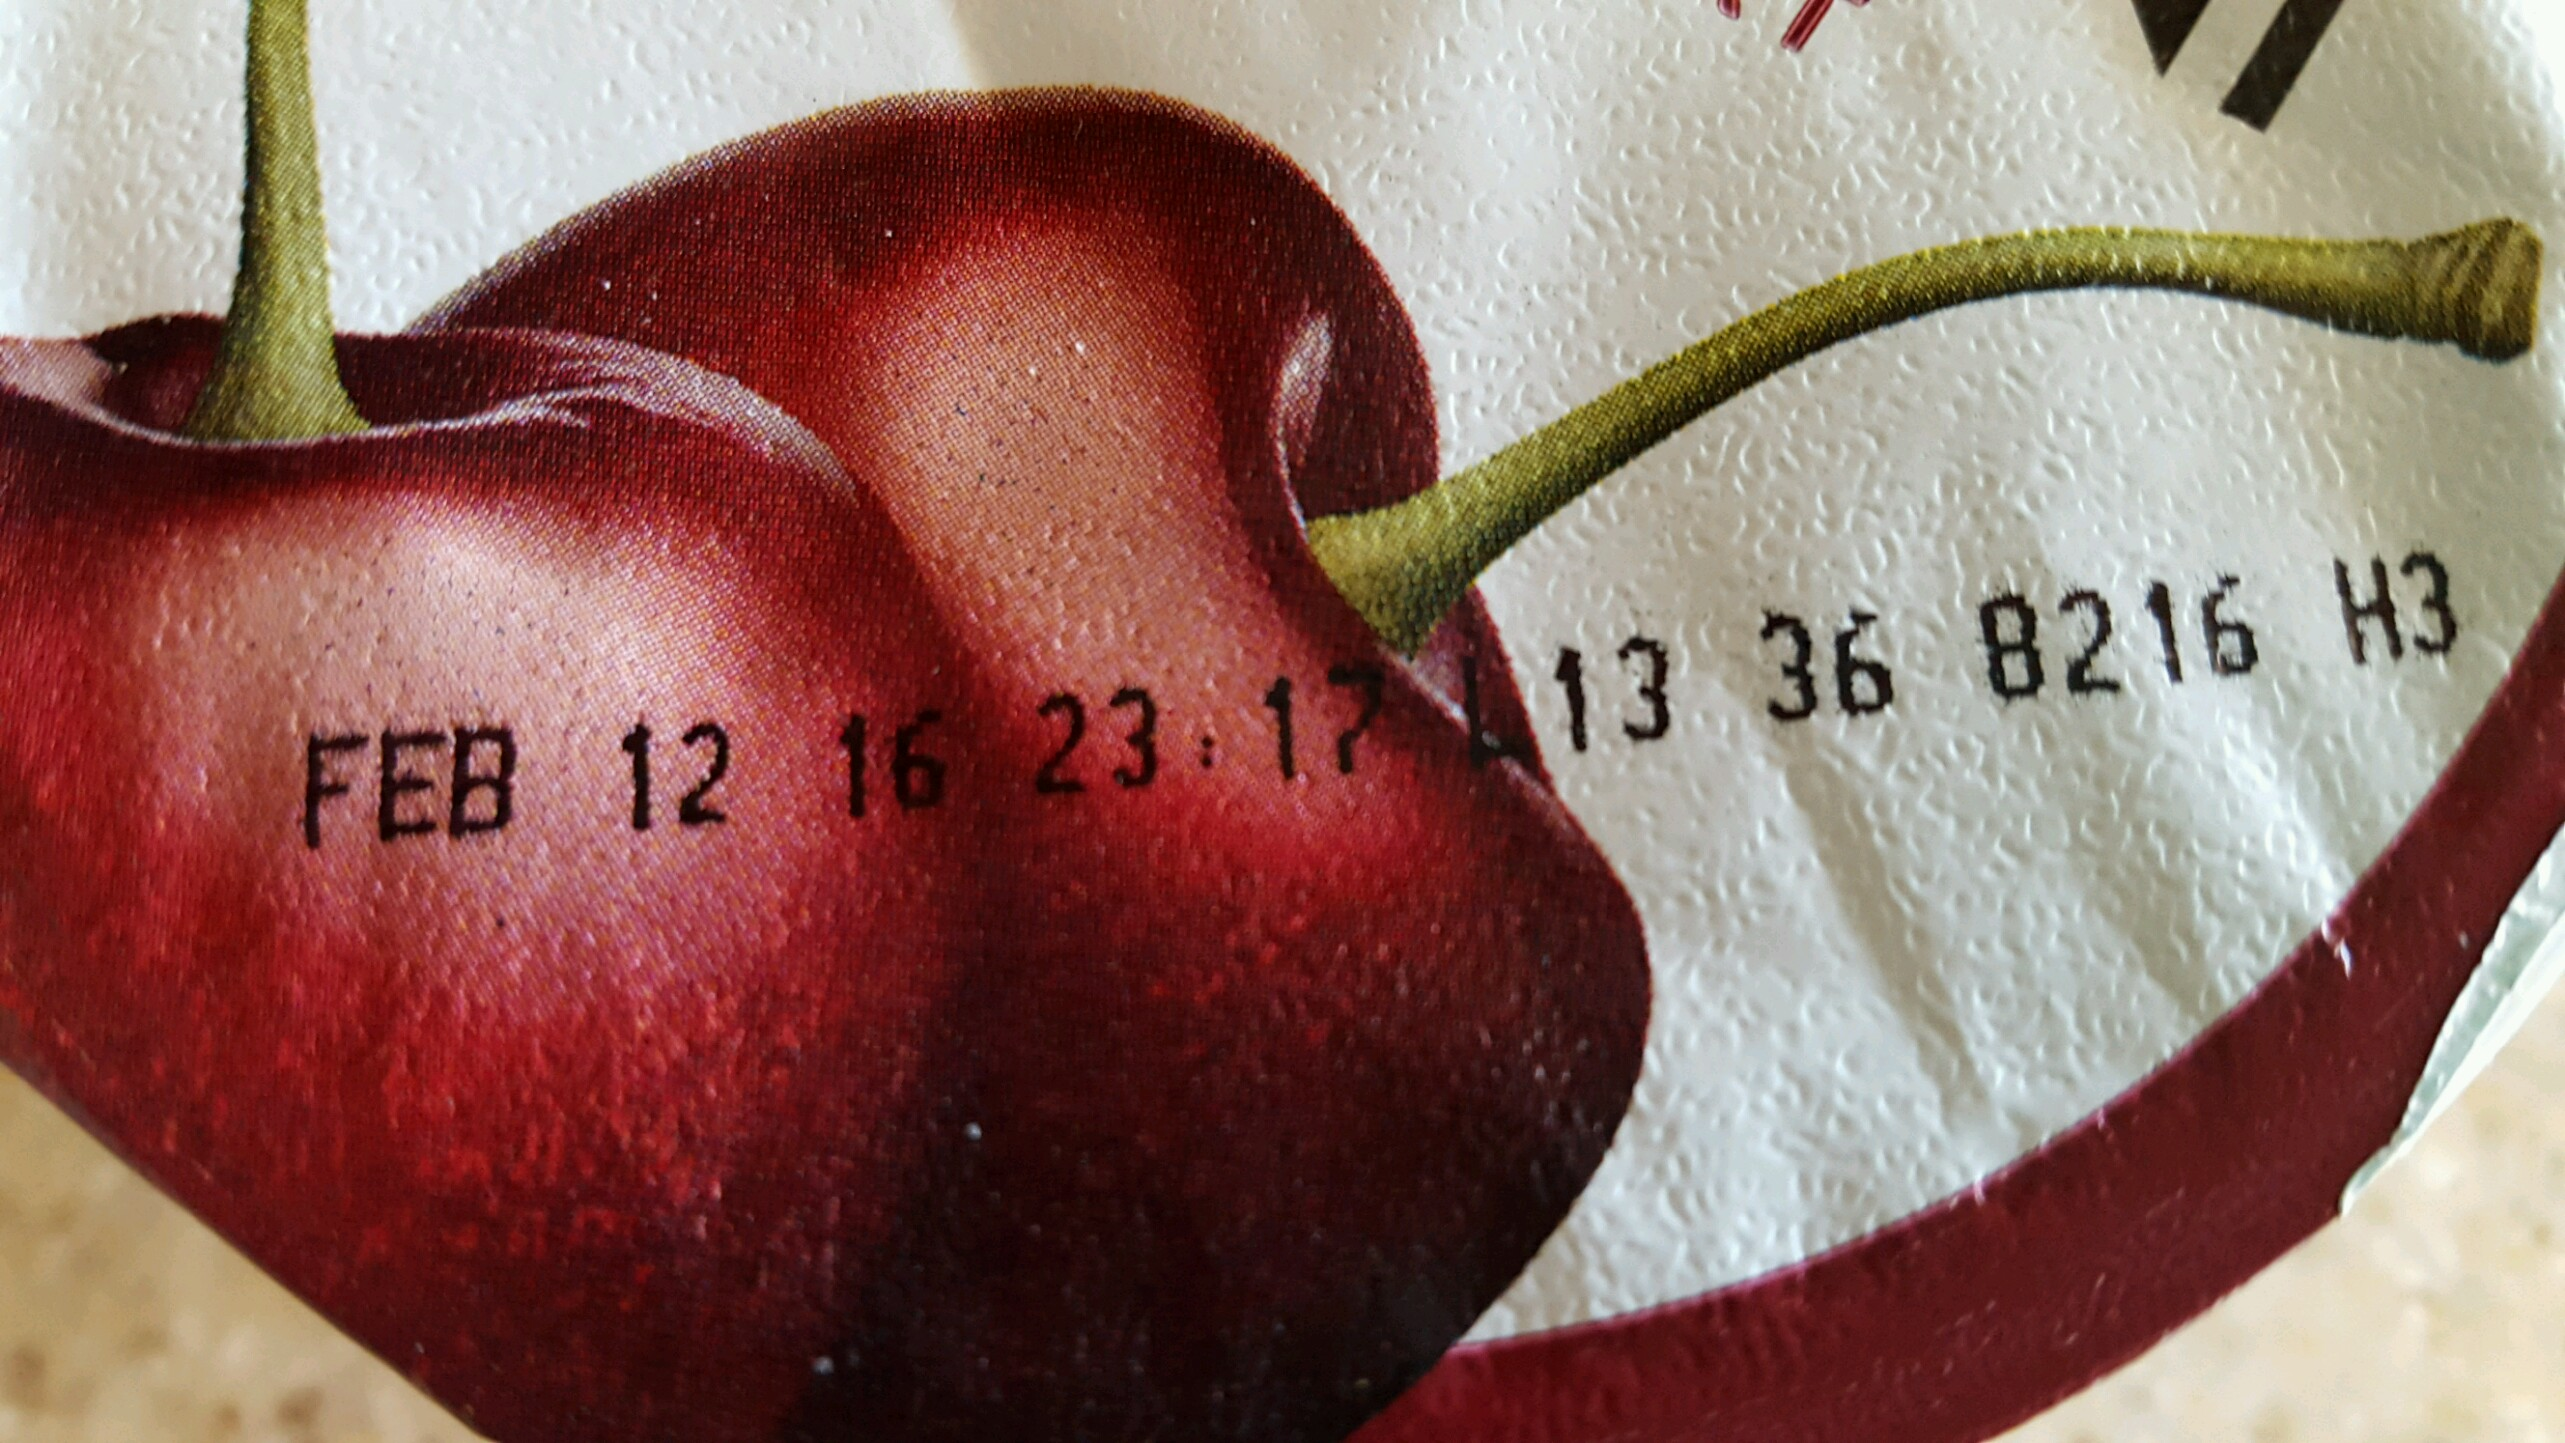 State Product Date Labels